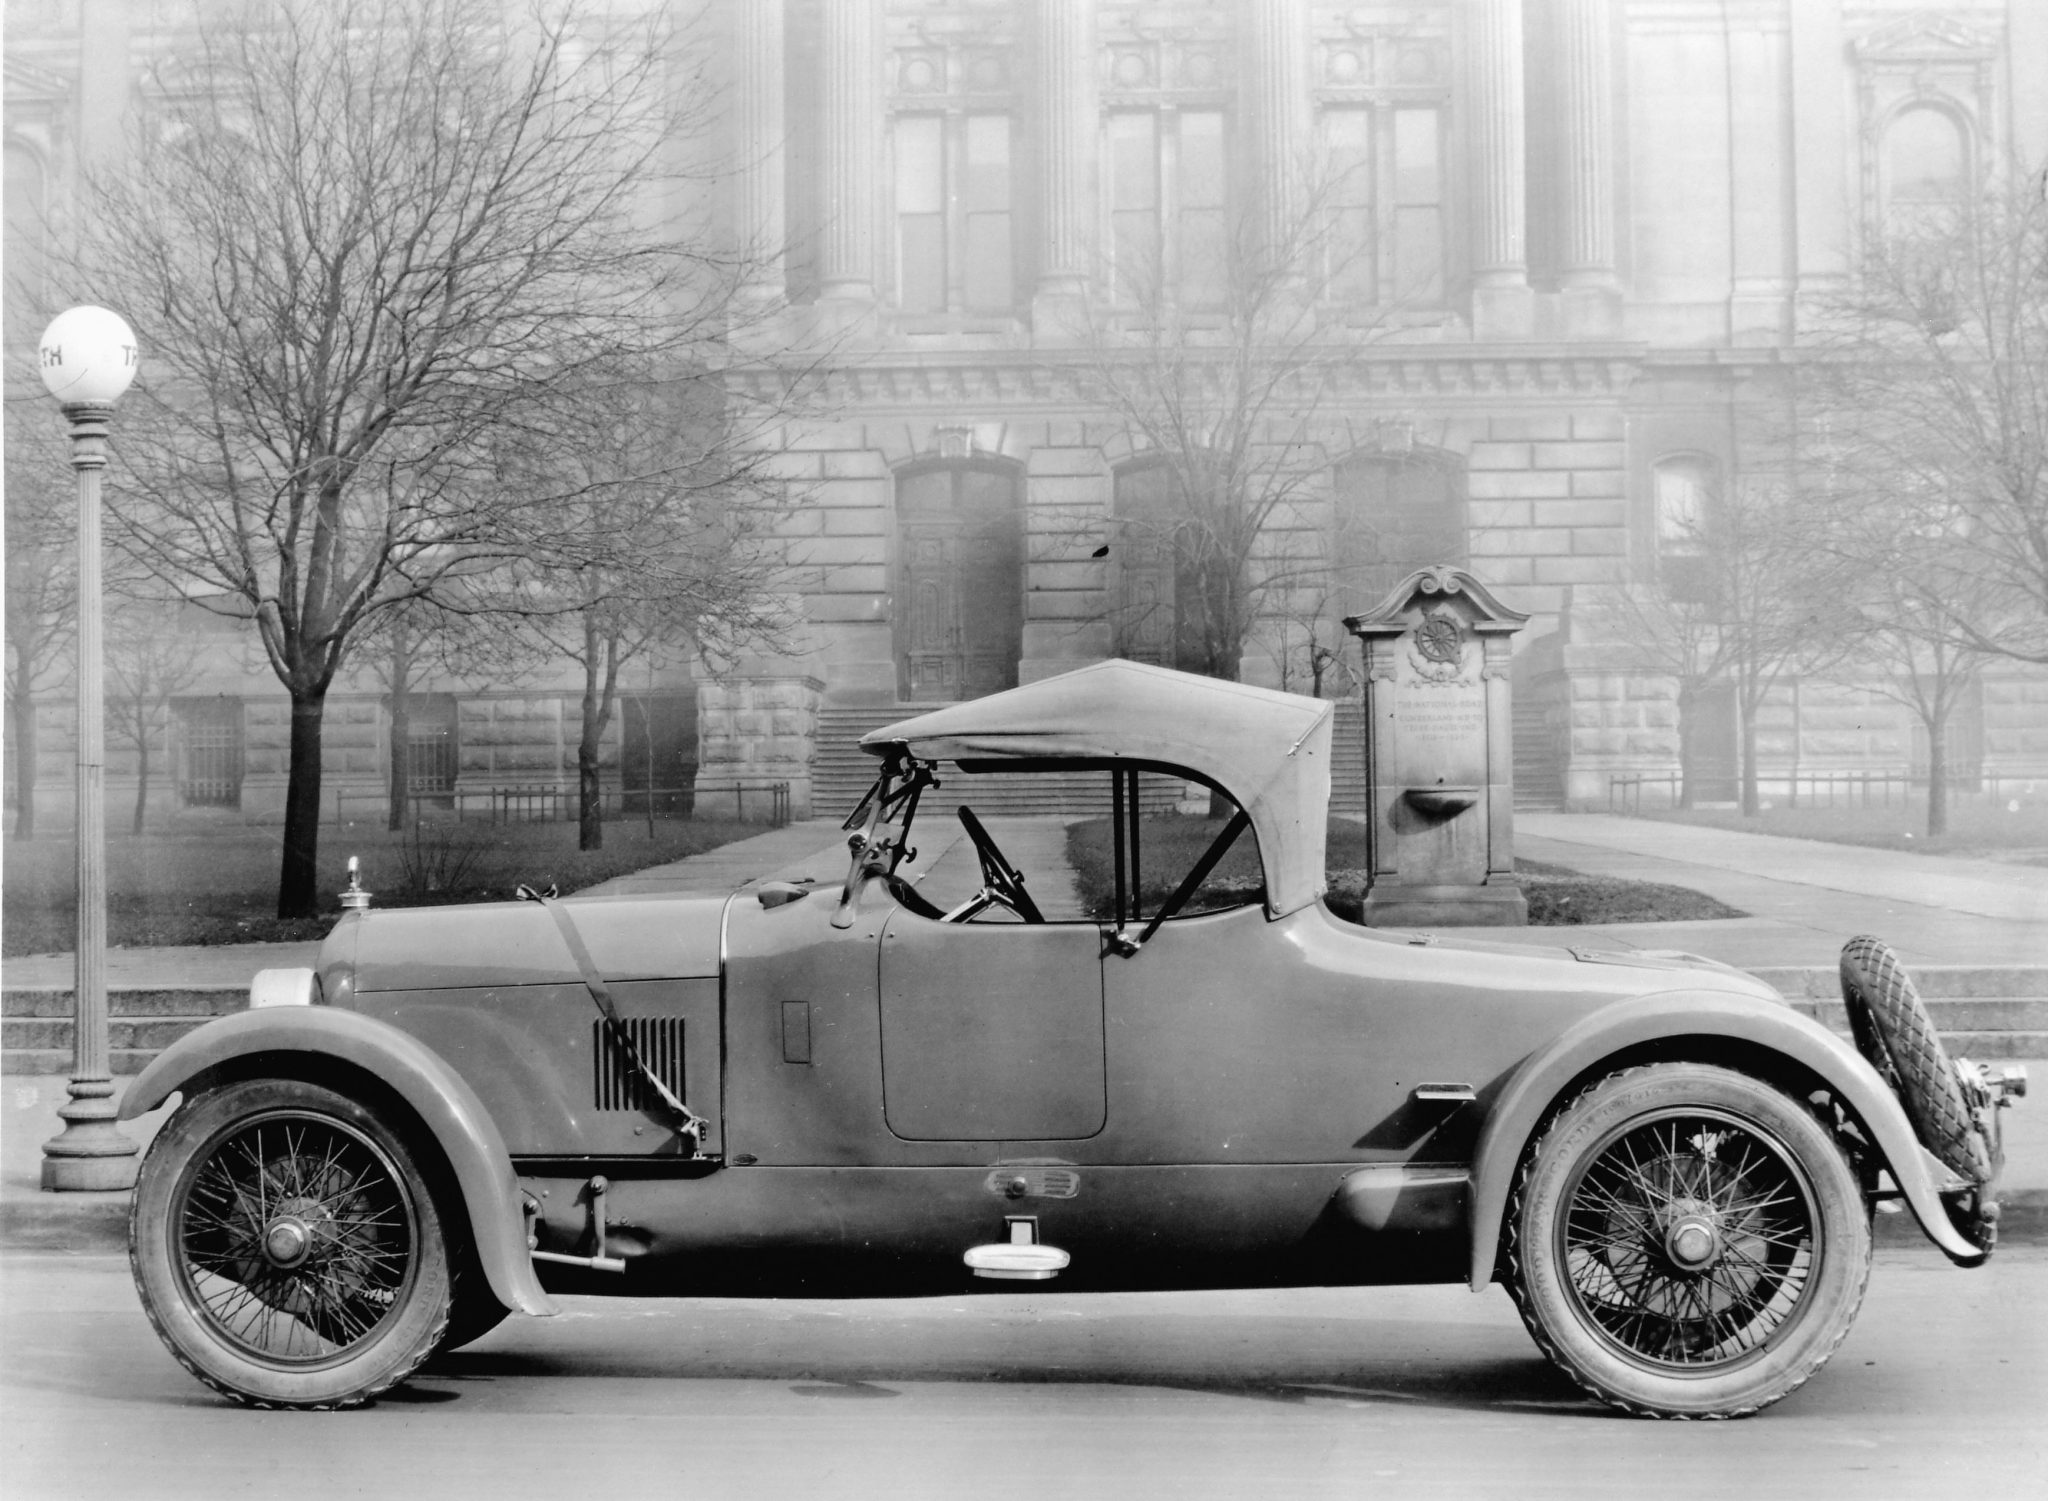 This was obviously someone's very expensive gift, as evidenced by the ribbon tied around the hood. This unusual 1922 Duesenberg roadster is parked in front of a monument to The National Road (later part of U.S. Route 40) that ran from Cumberland, Maryland, to Terra Haute, Indiana, where this photograph was taken. The coachbuilder is unknown but the long rear deck, cycle fenders and absence of running boards certainly make this an interesting design.